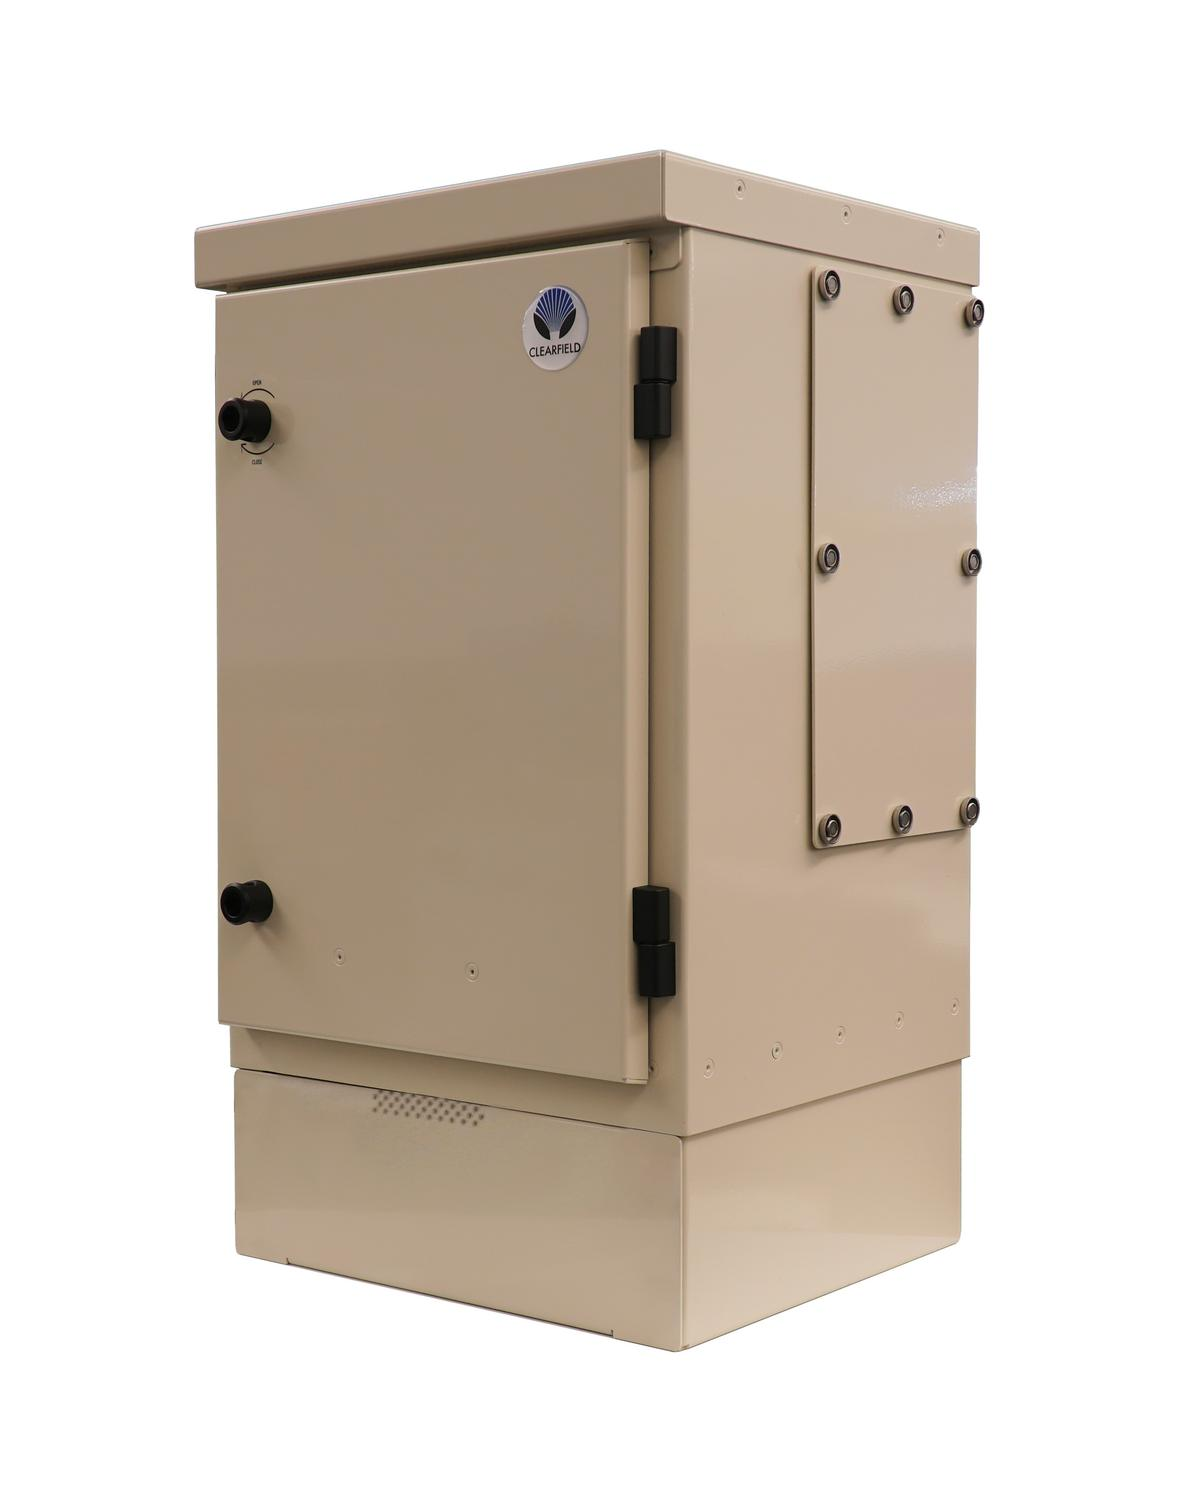 Angled image of StreetSmart Pre-Assigned FDH Cabinet